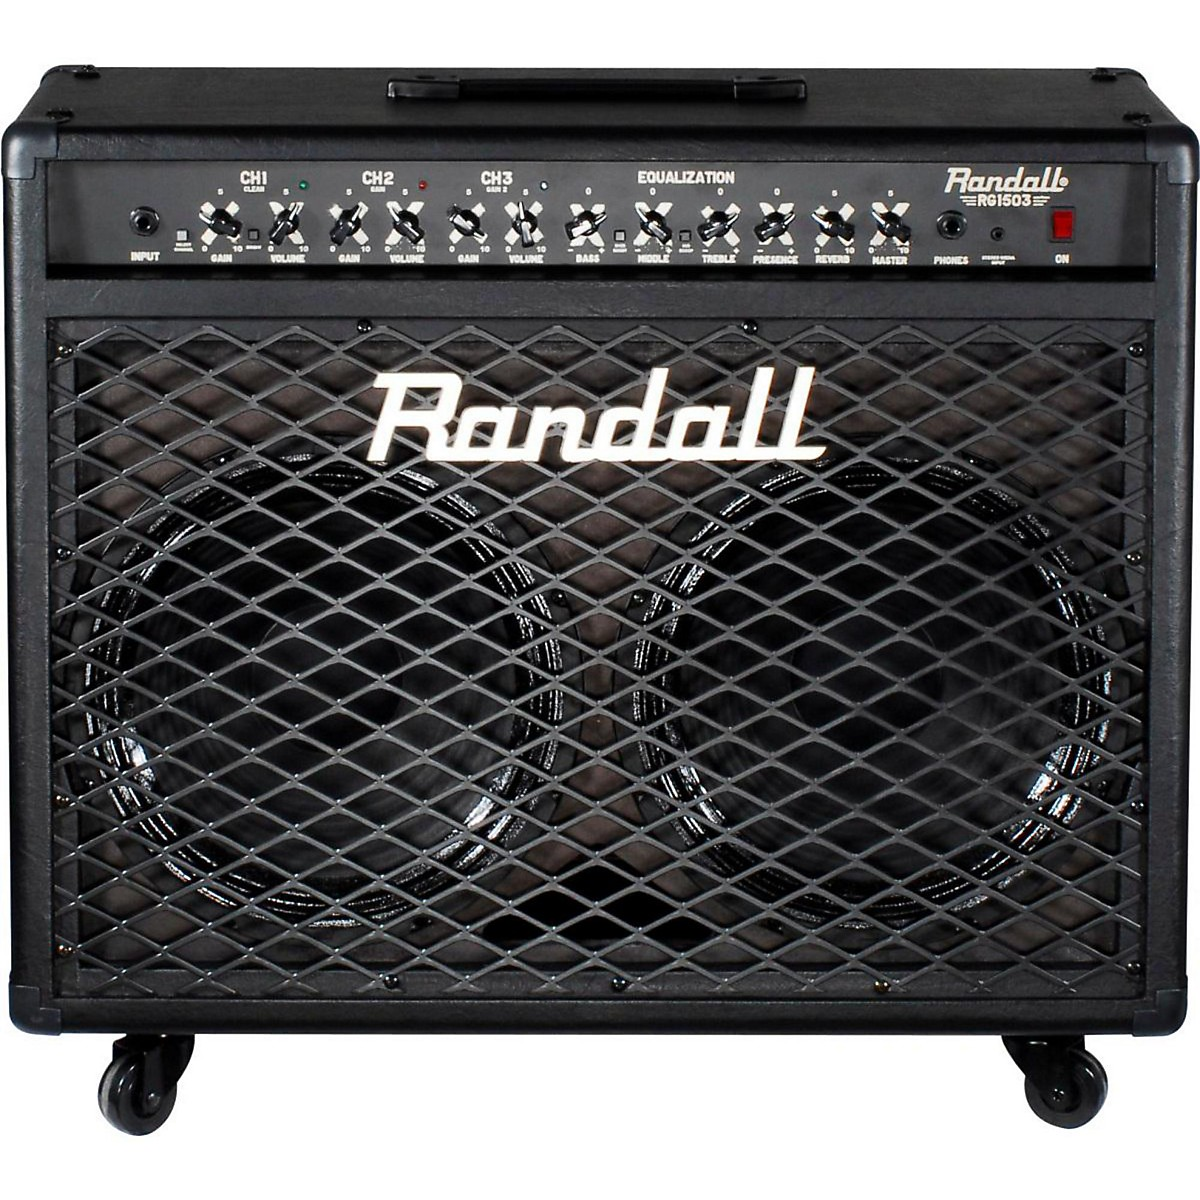 Randall RG1503-212 150W Solid State Guitar Combo